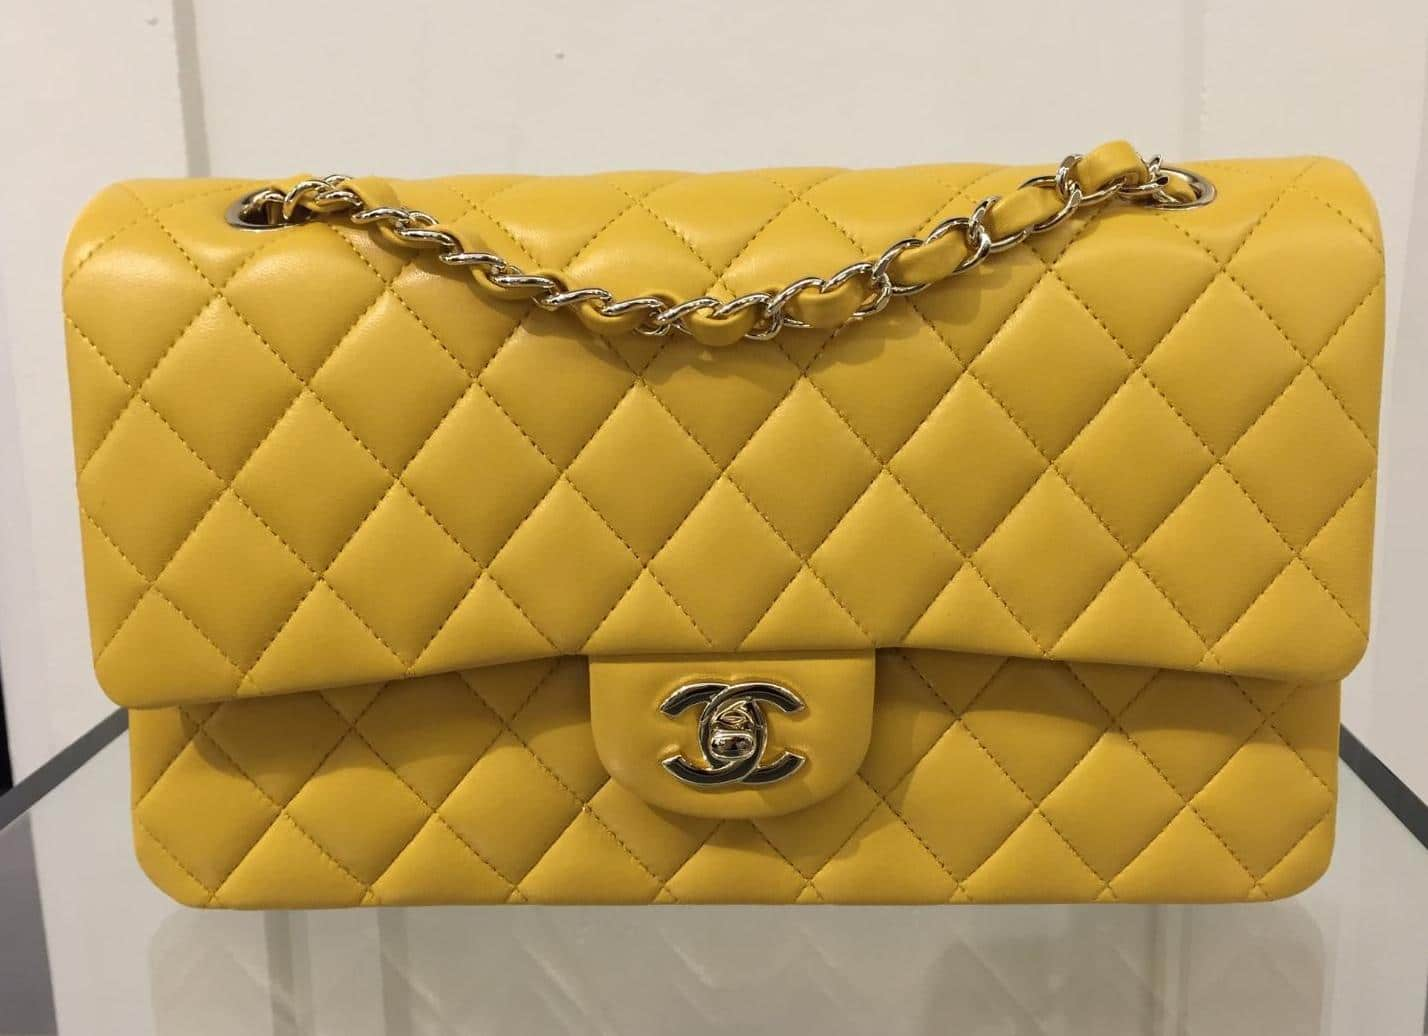 ab053ec8fa99 Chanel Yellow Classic Flap Medium Bag - Cruise 2016